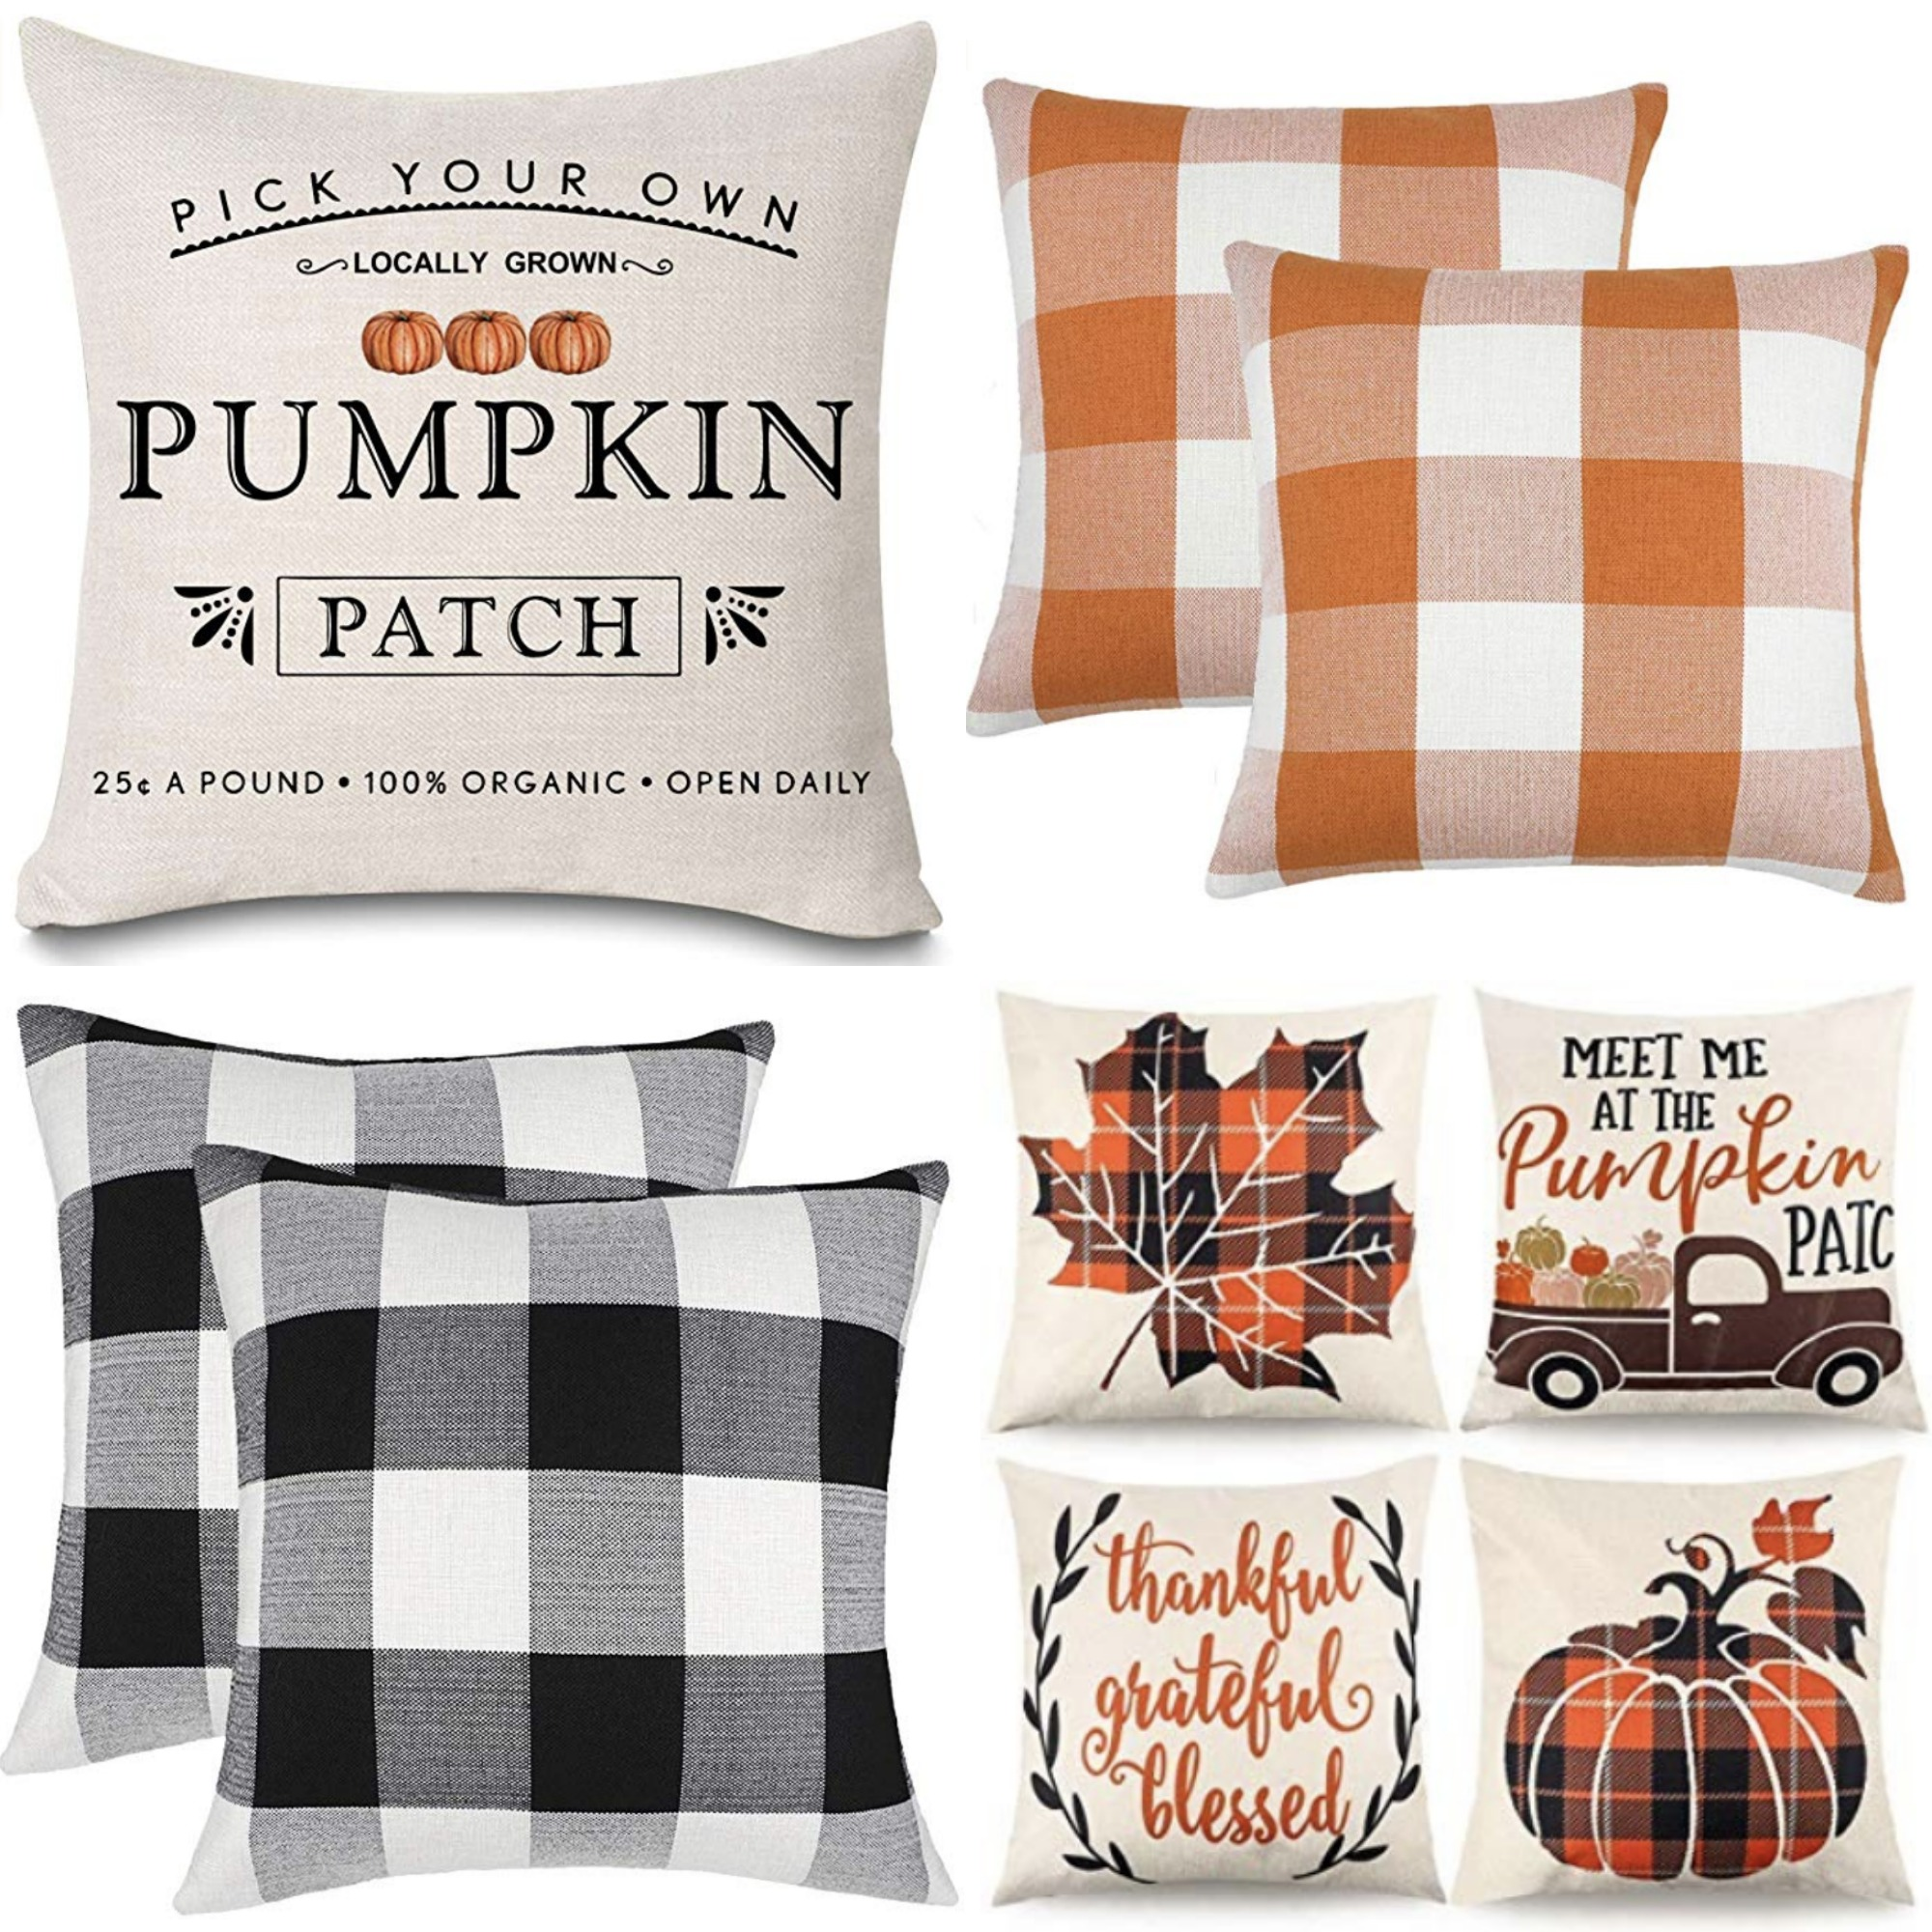 HAPYLY Set of 4 Pumpkin Cushion Cover Case Throw Pillow Cover Cotton Blend with Zipper Happy Fall Yall Pumpkin Thanksgiving Halloween for Home Sofa Decorative 18 x 18 inch